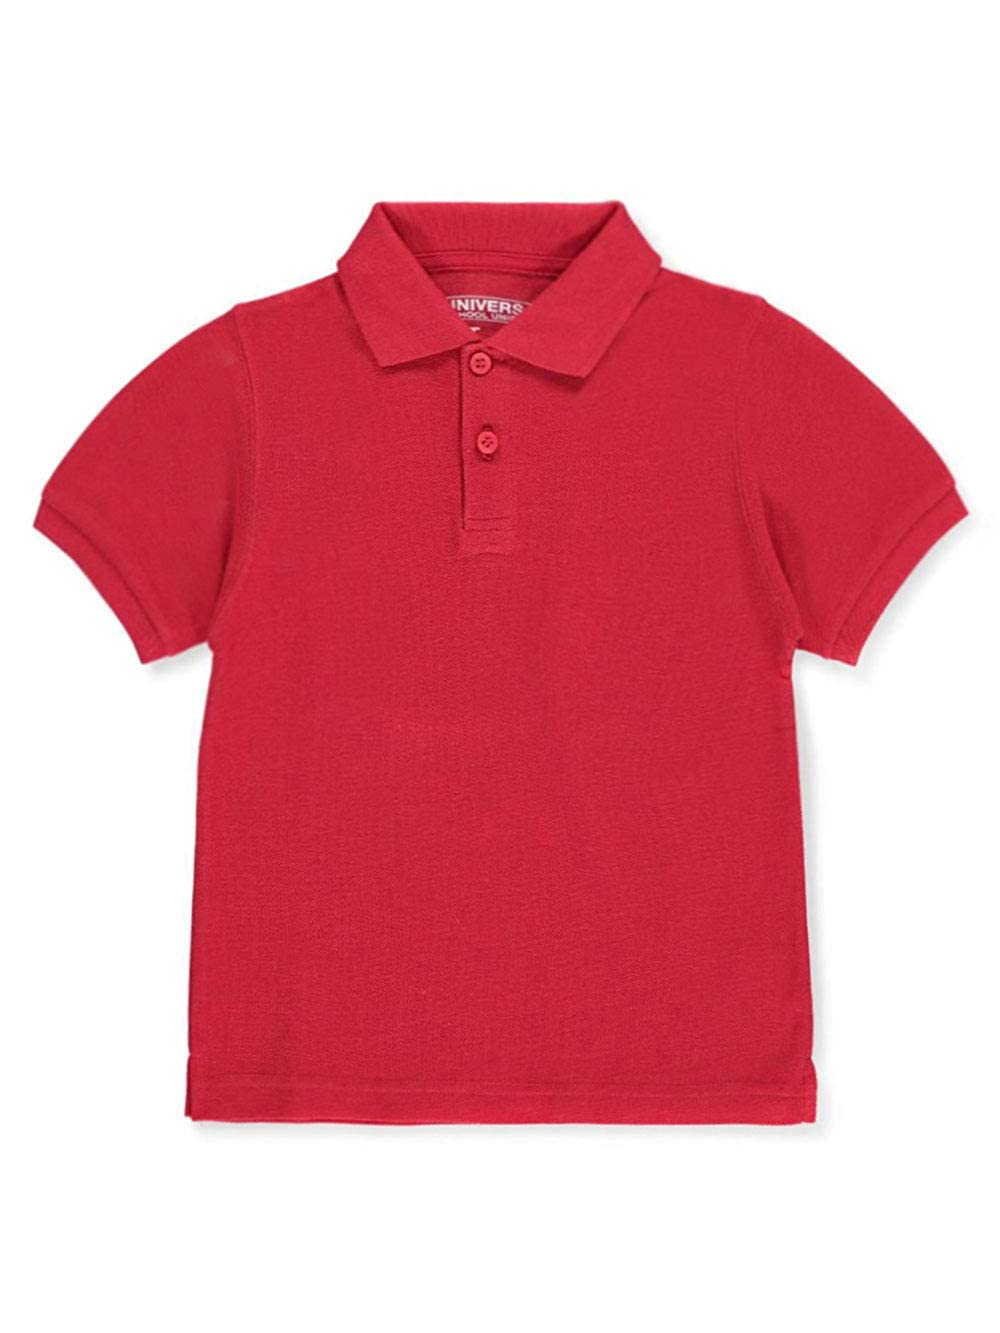 Unisex Boys Girls Short Sleeve Pique Polo Shirt w//Stain Release by Univ Sku:Staniu838RED2T; Color:RED; Size:2T 2T